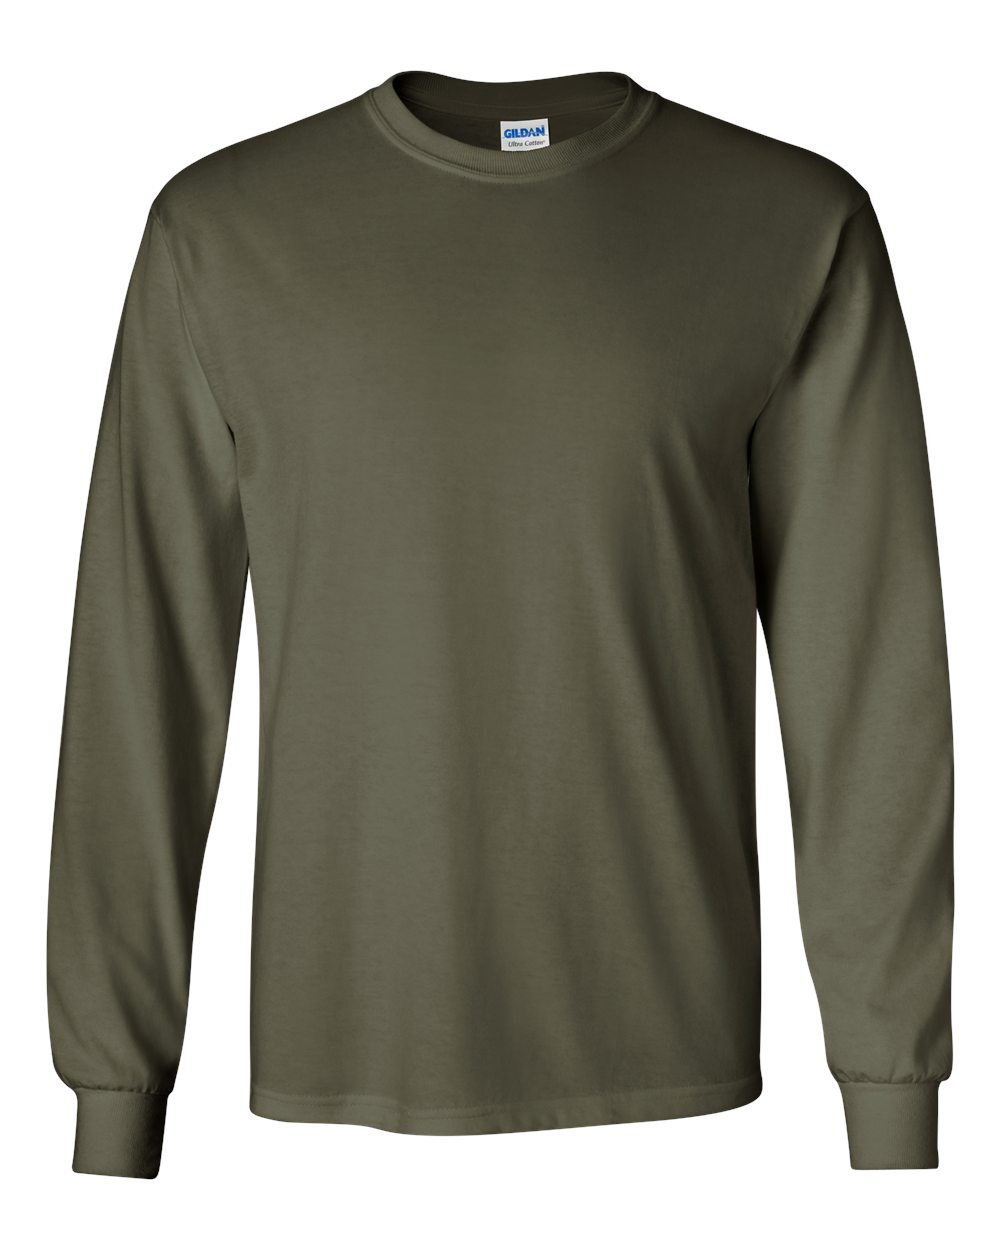 3dfb62d4a3d Gildan 2400 - Ultra Cotton™ Long Sleeve T-Shirt